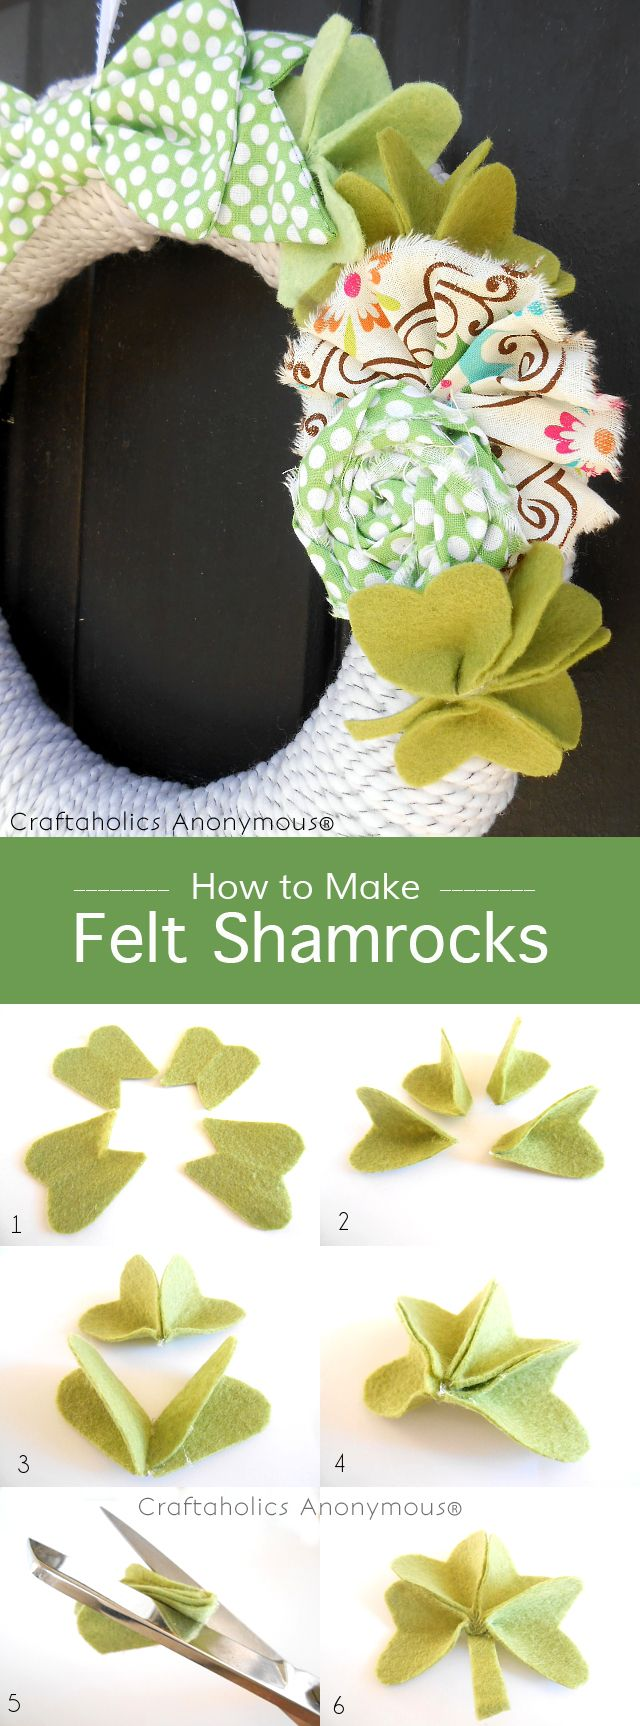 Craftaholics Anonymous® | DIY St. Patricks wreath. Make art for your day this lucky holiday! Such a cute idea